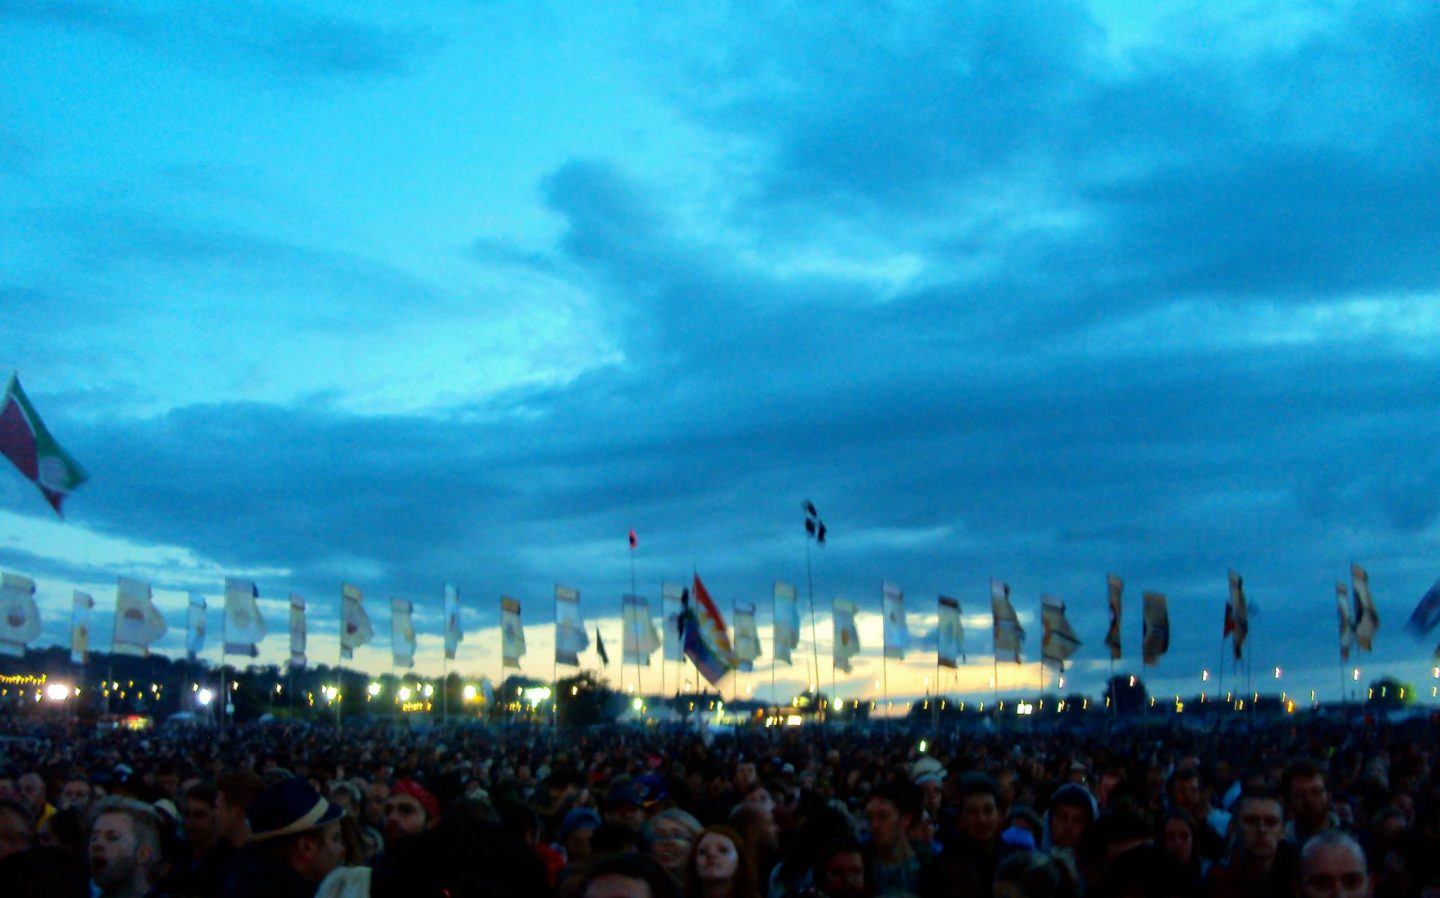 Sunset with flags at Glastonbury